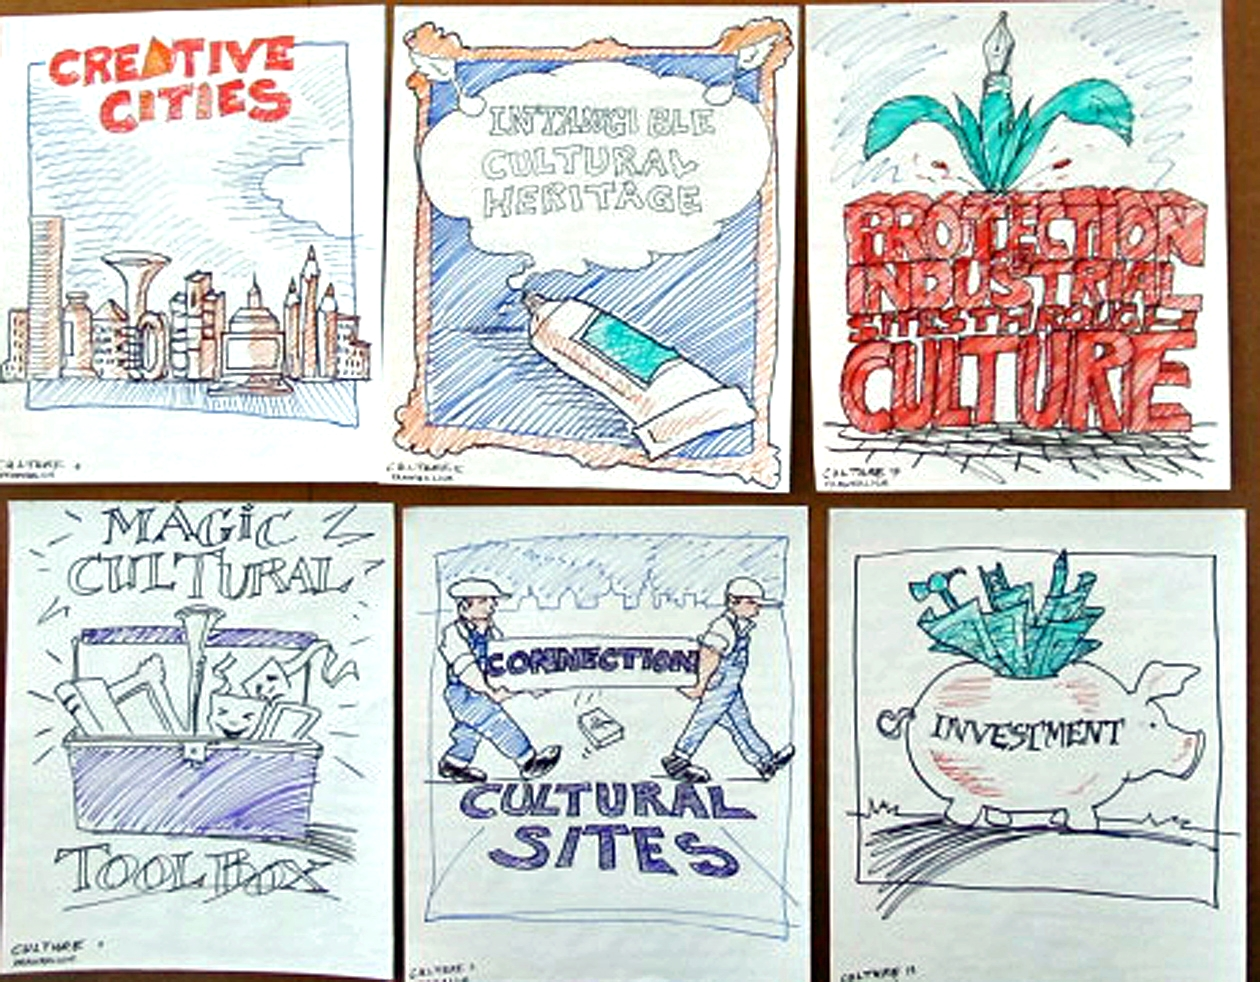 Research and development cartoons.